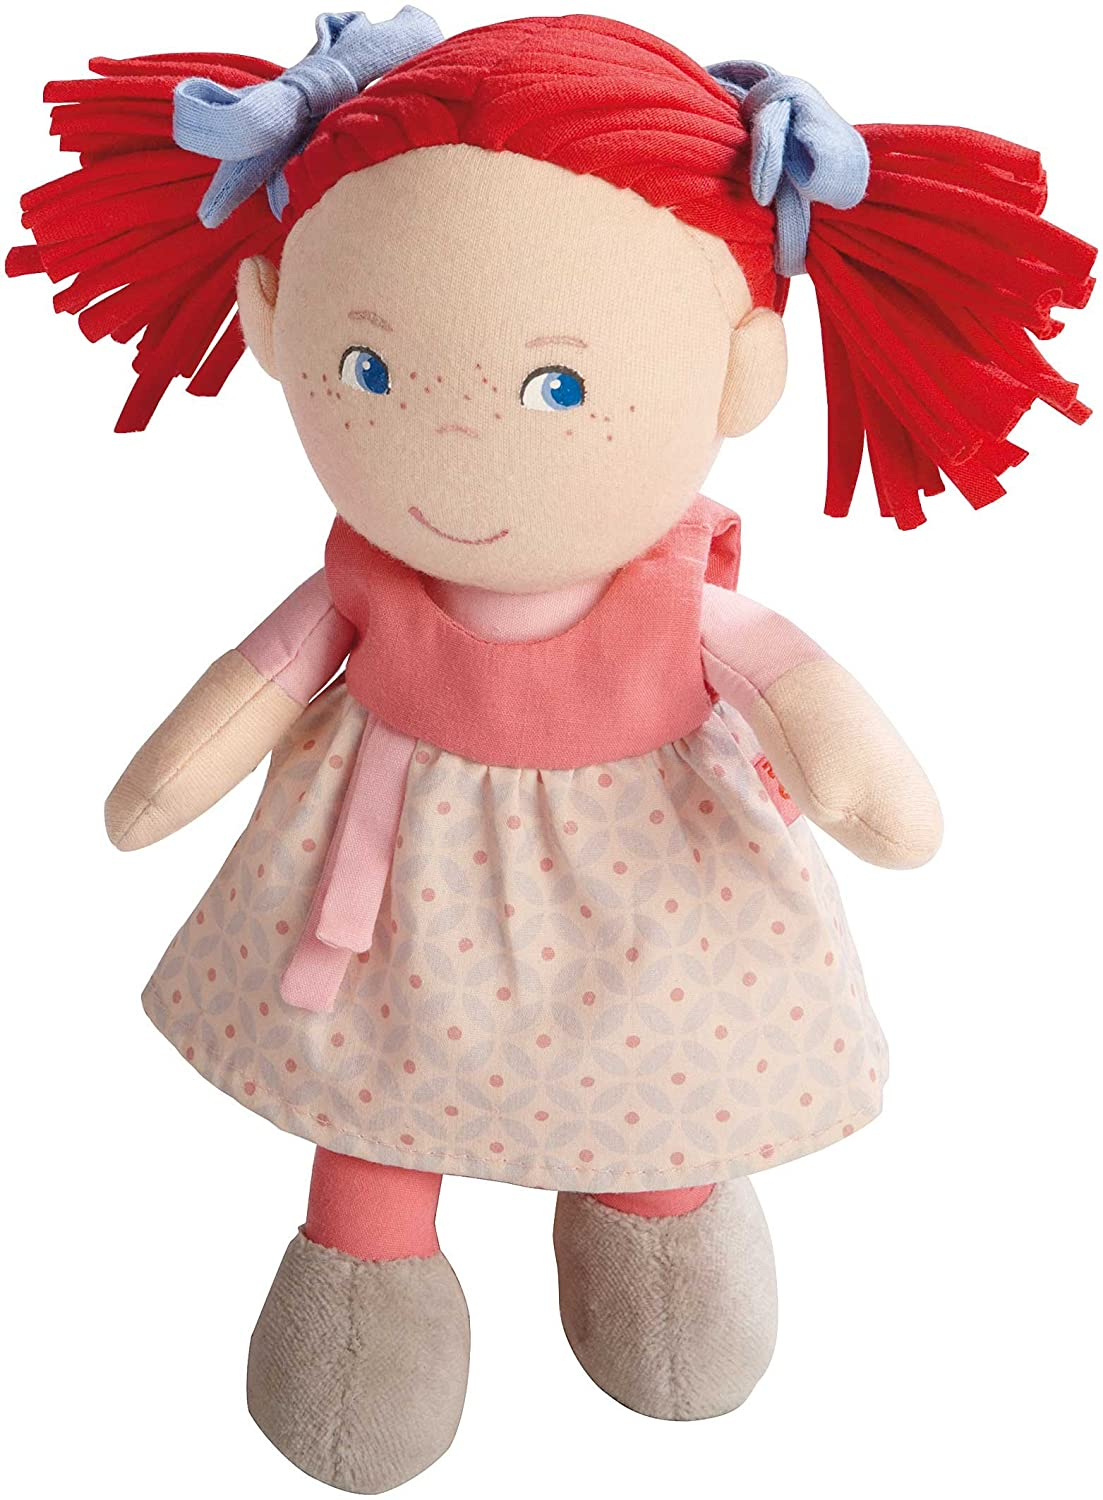 """HABA Soft Doll Mirli 8"""" - First Baby Doll with Red Pigtails for Ages 6 Months and Up"""